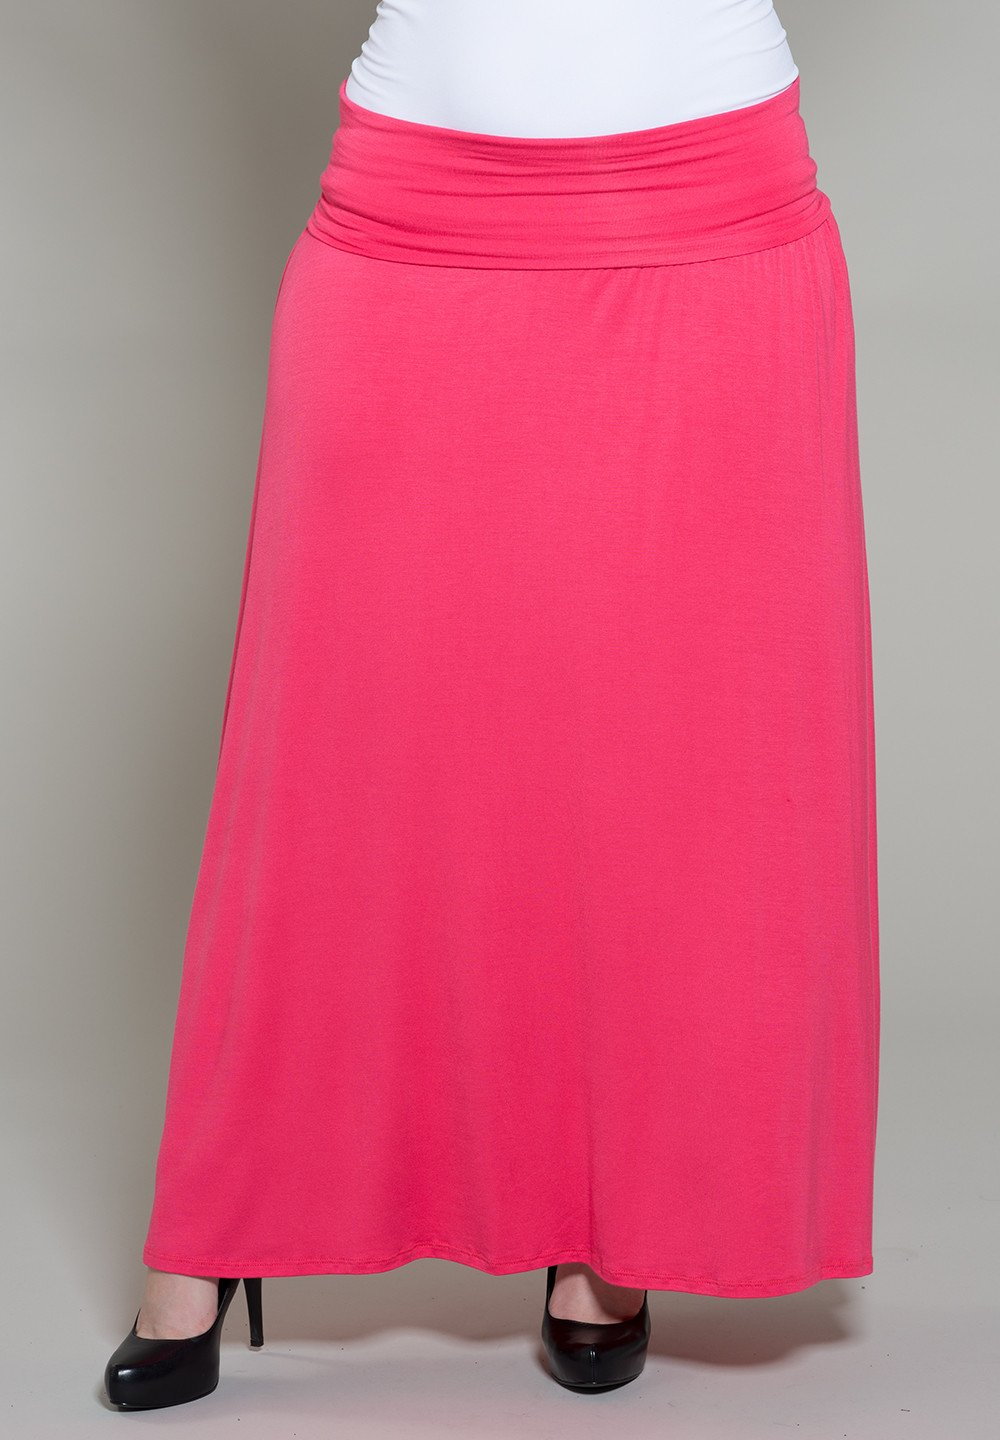 California Maxi Skirt - CalicoMarket